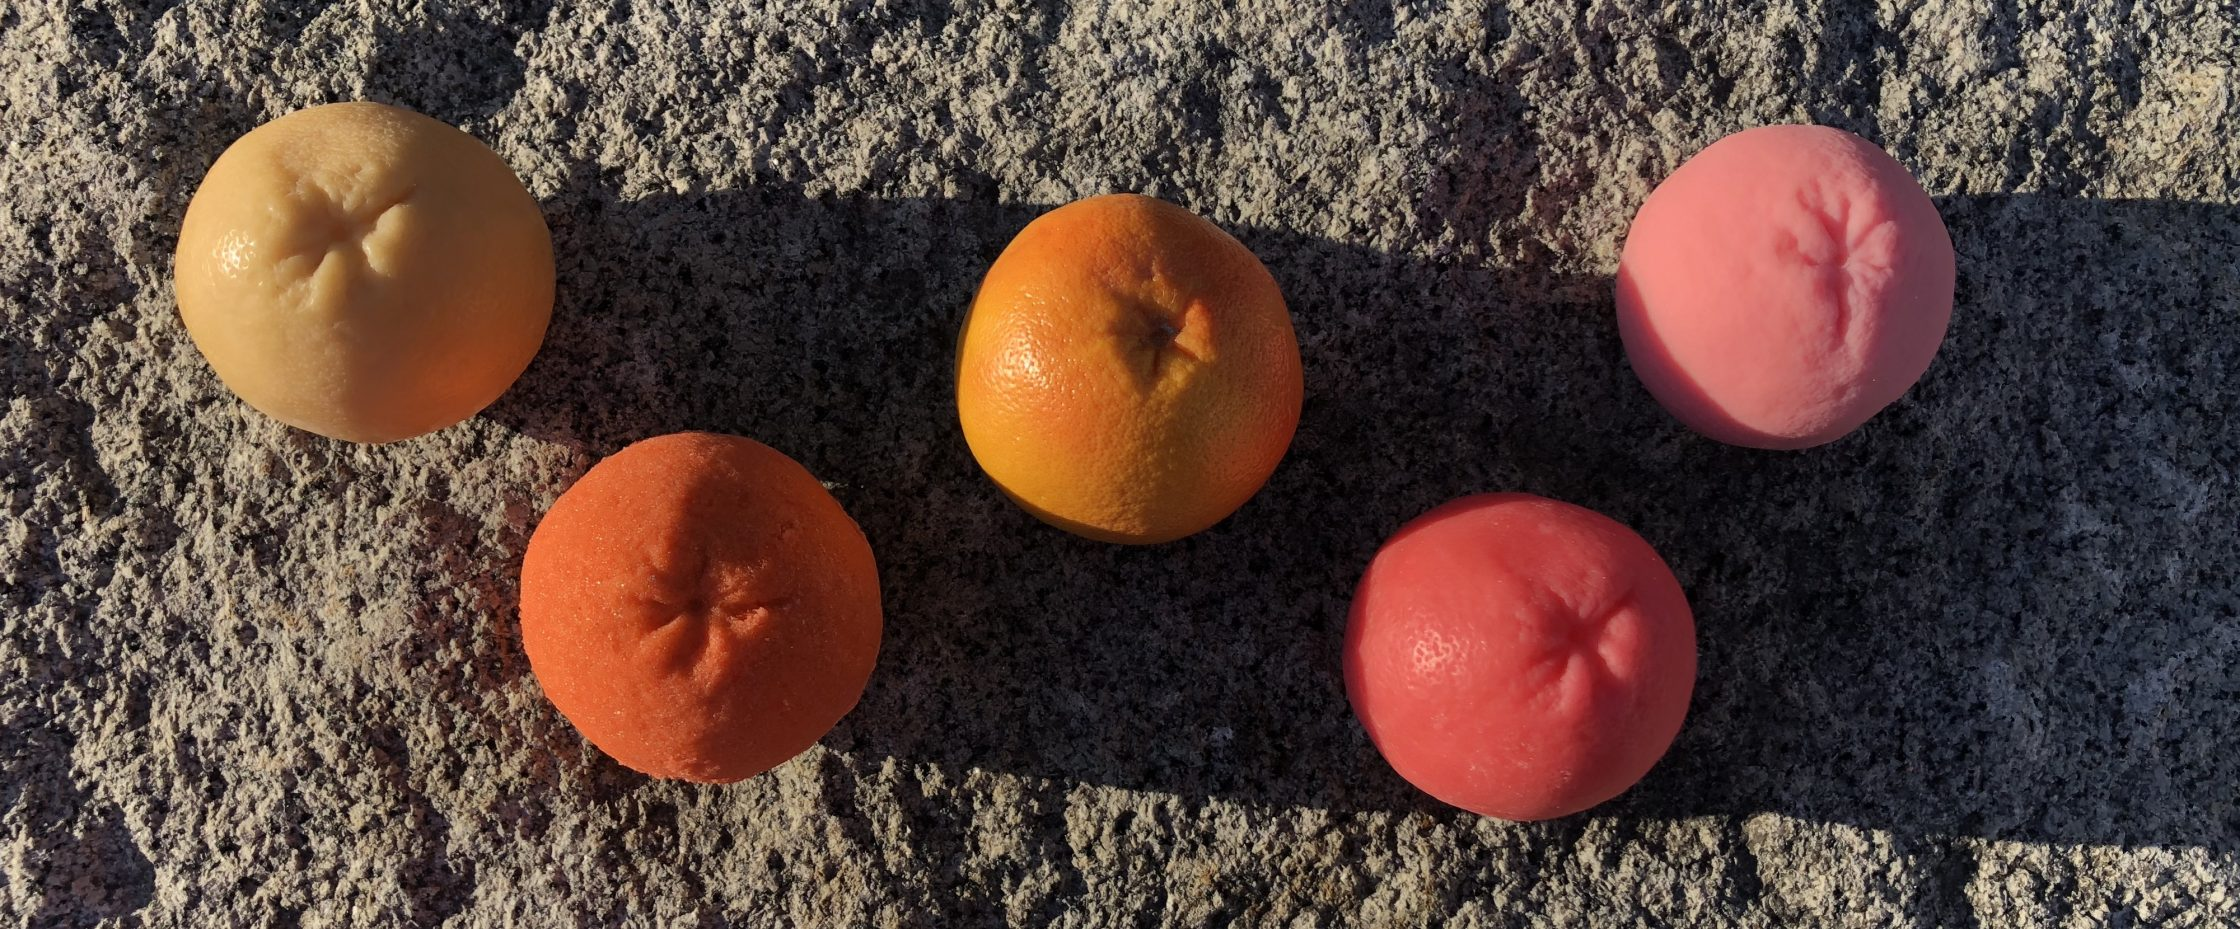 wax, rubber, sugar grapefruits in evening light on stone